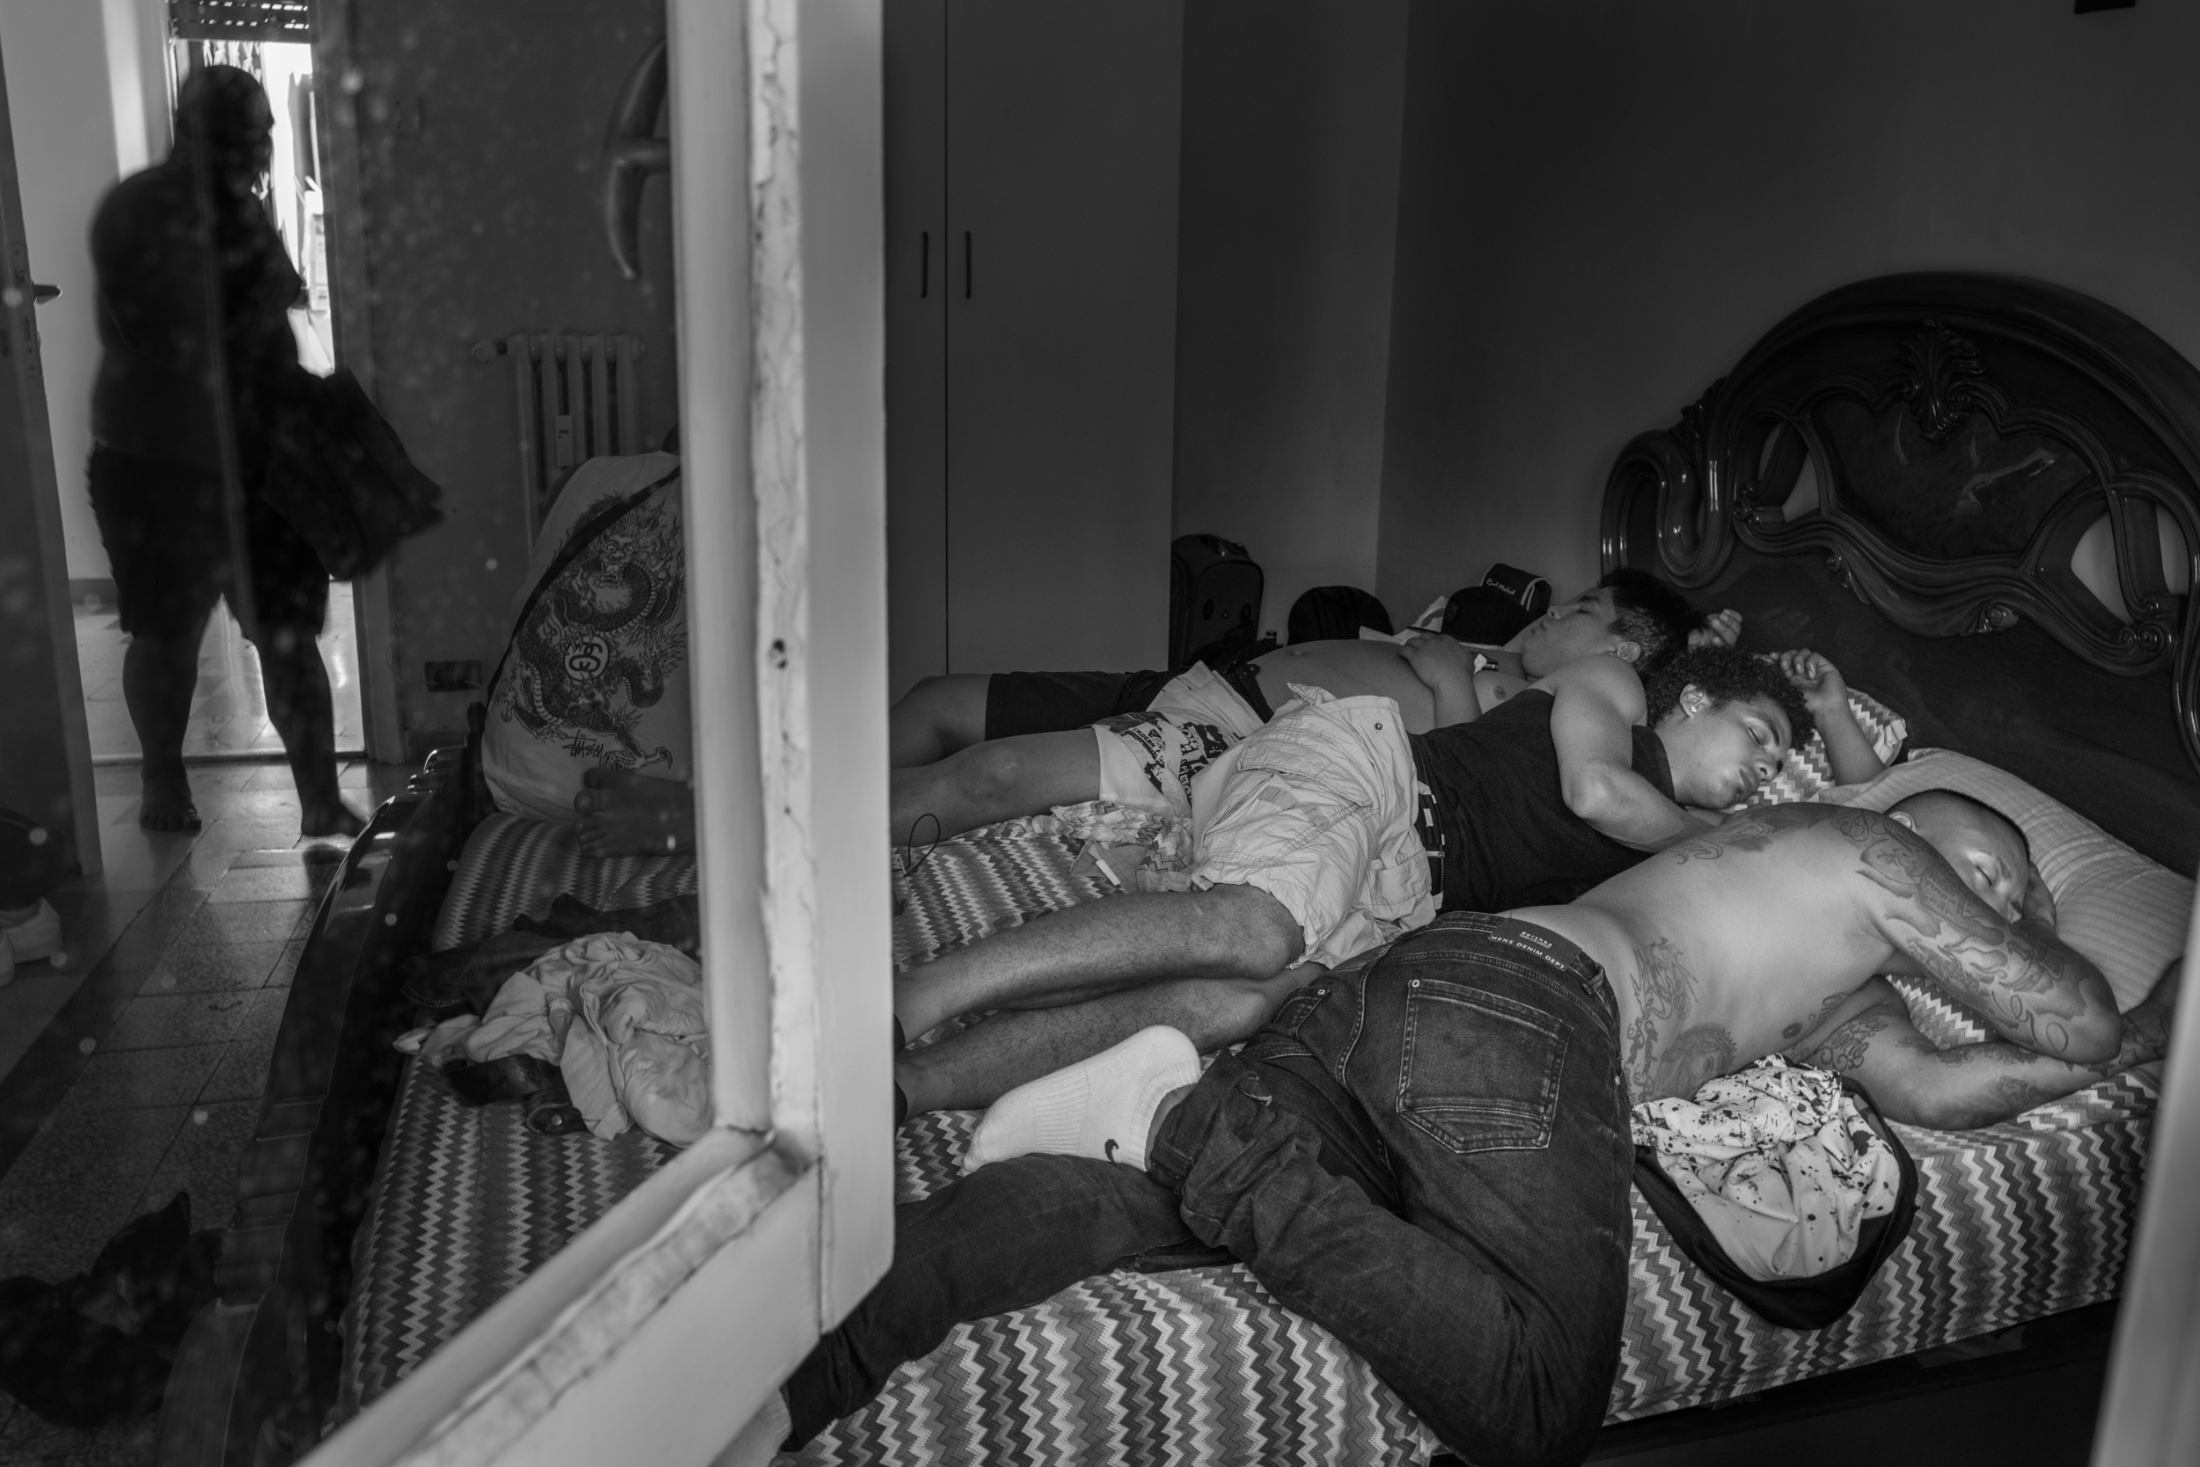 3 members of the Latin Kings gang sleep on the same bed after a long night partying and celebrating a successful meeting.